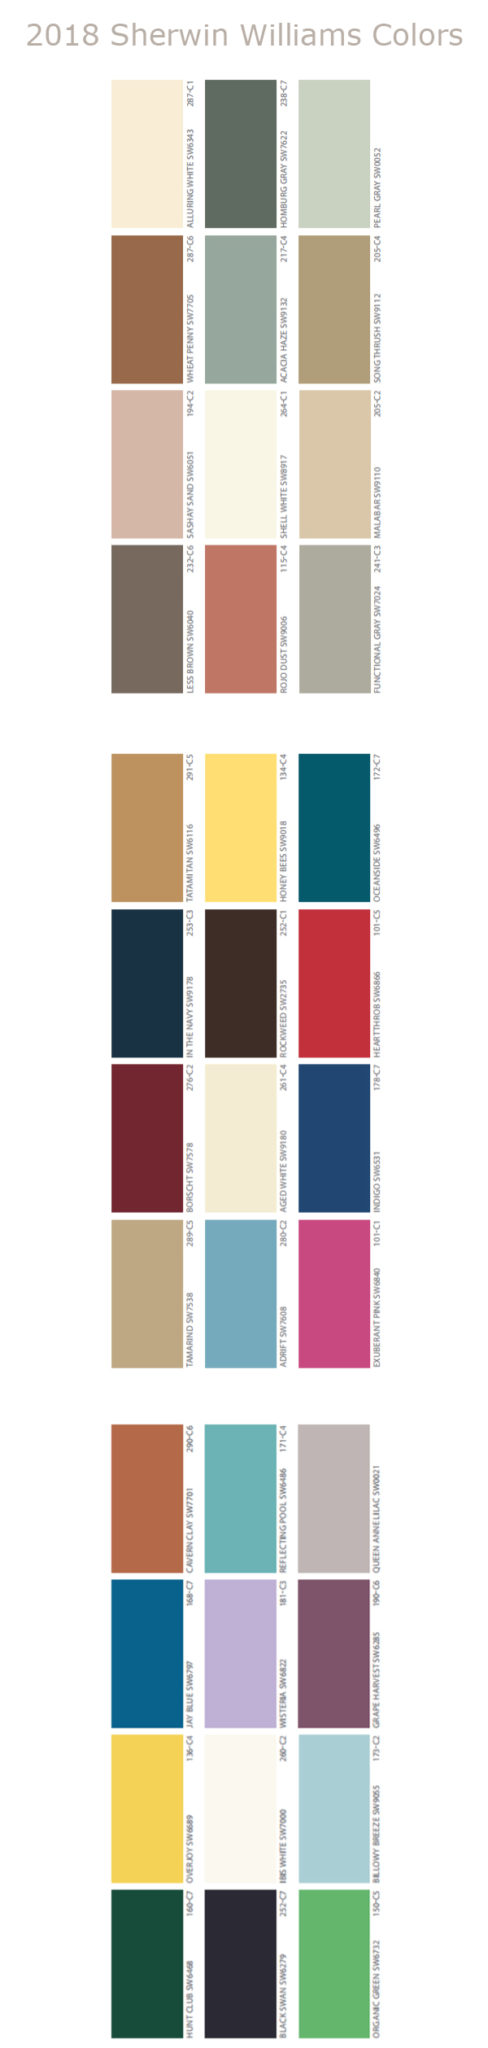 2018 Sherwin Williams Paint Colors